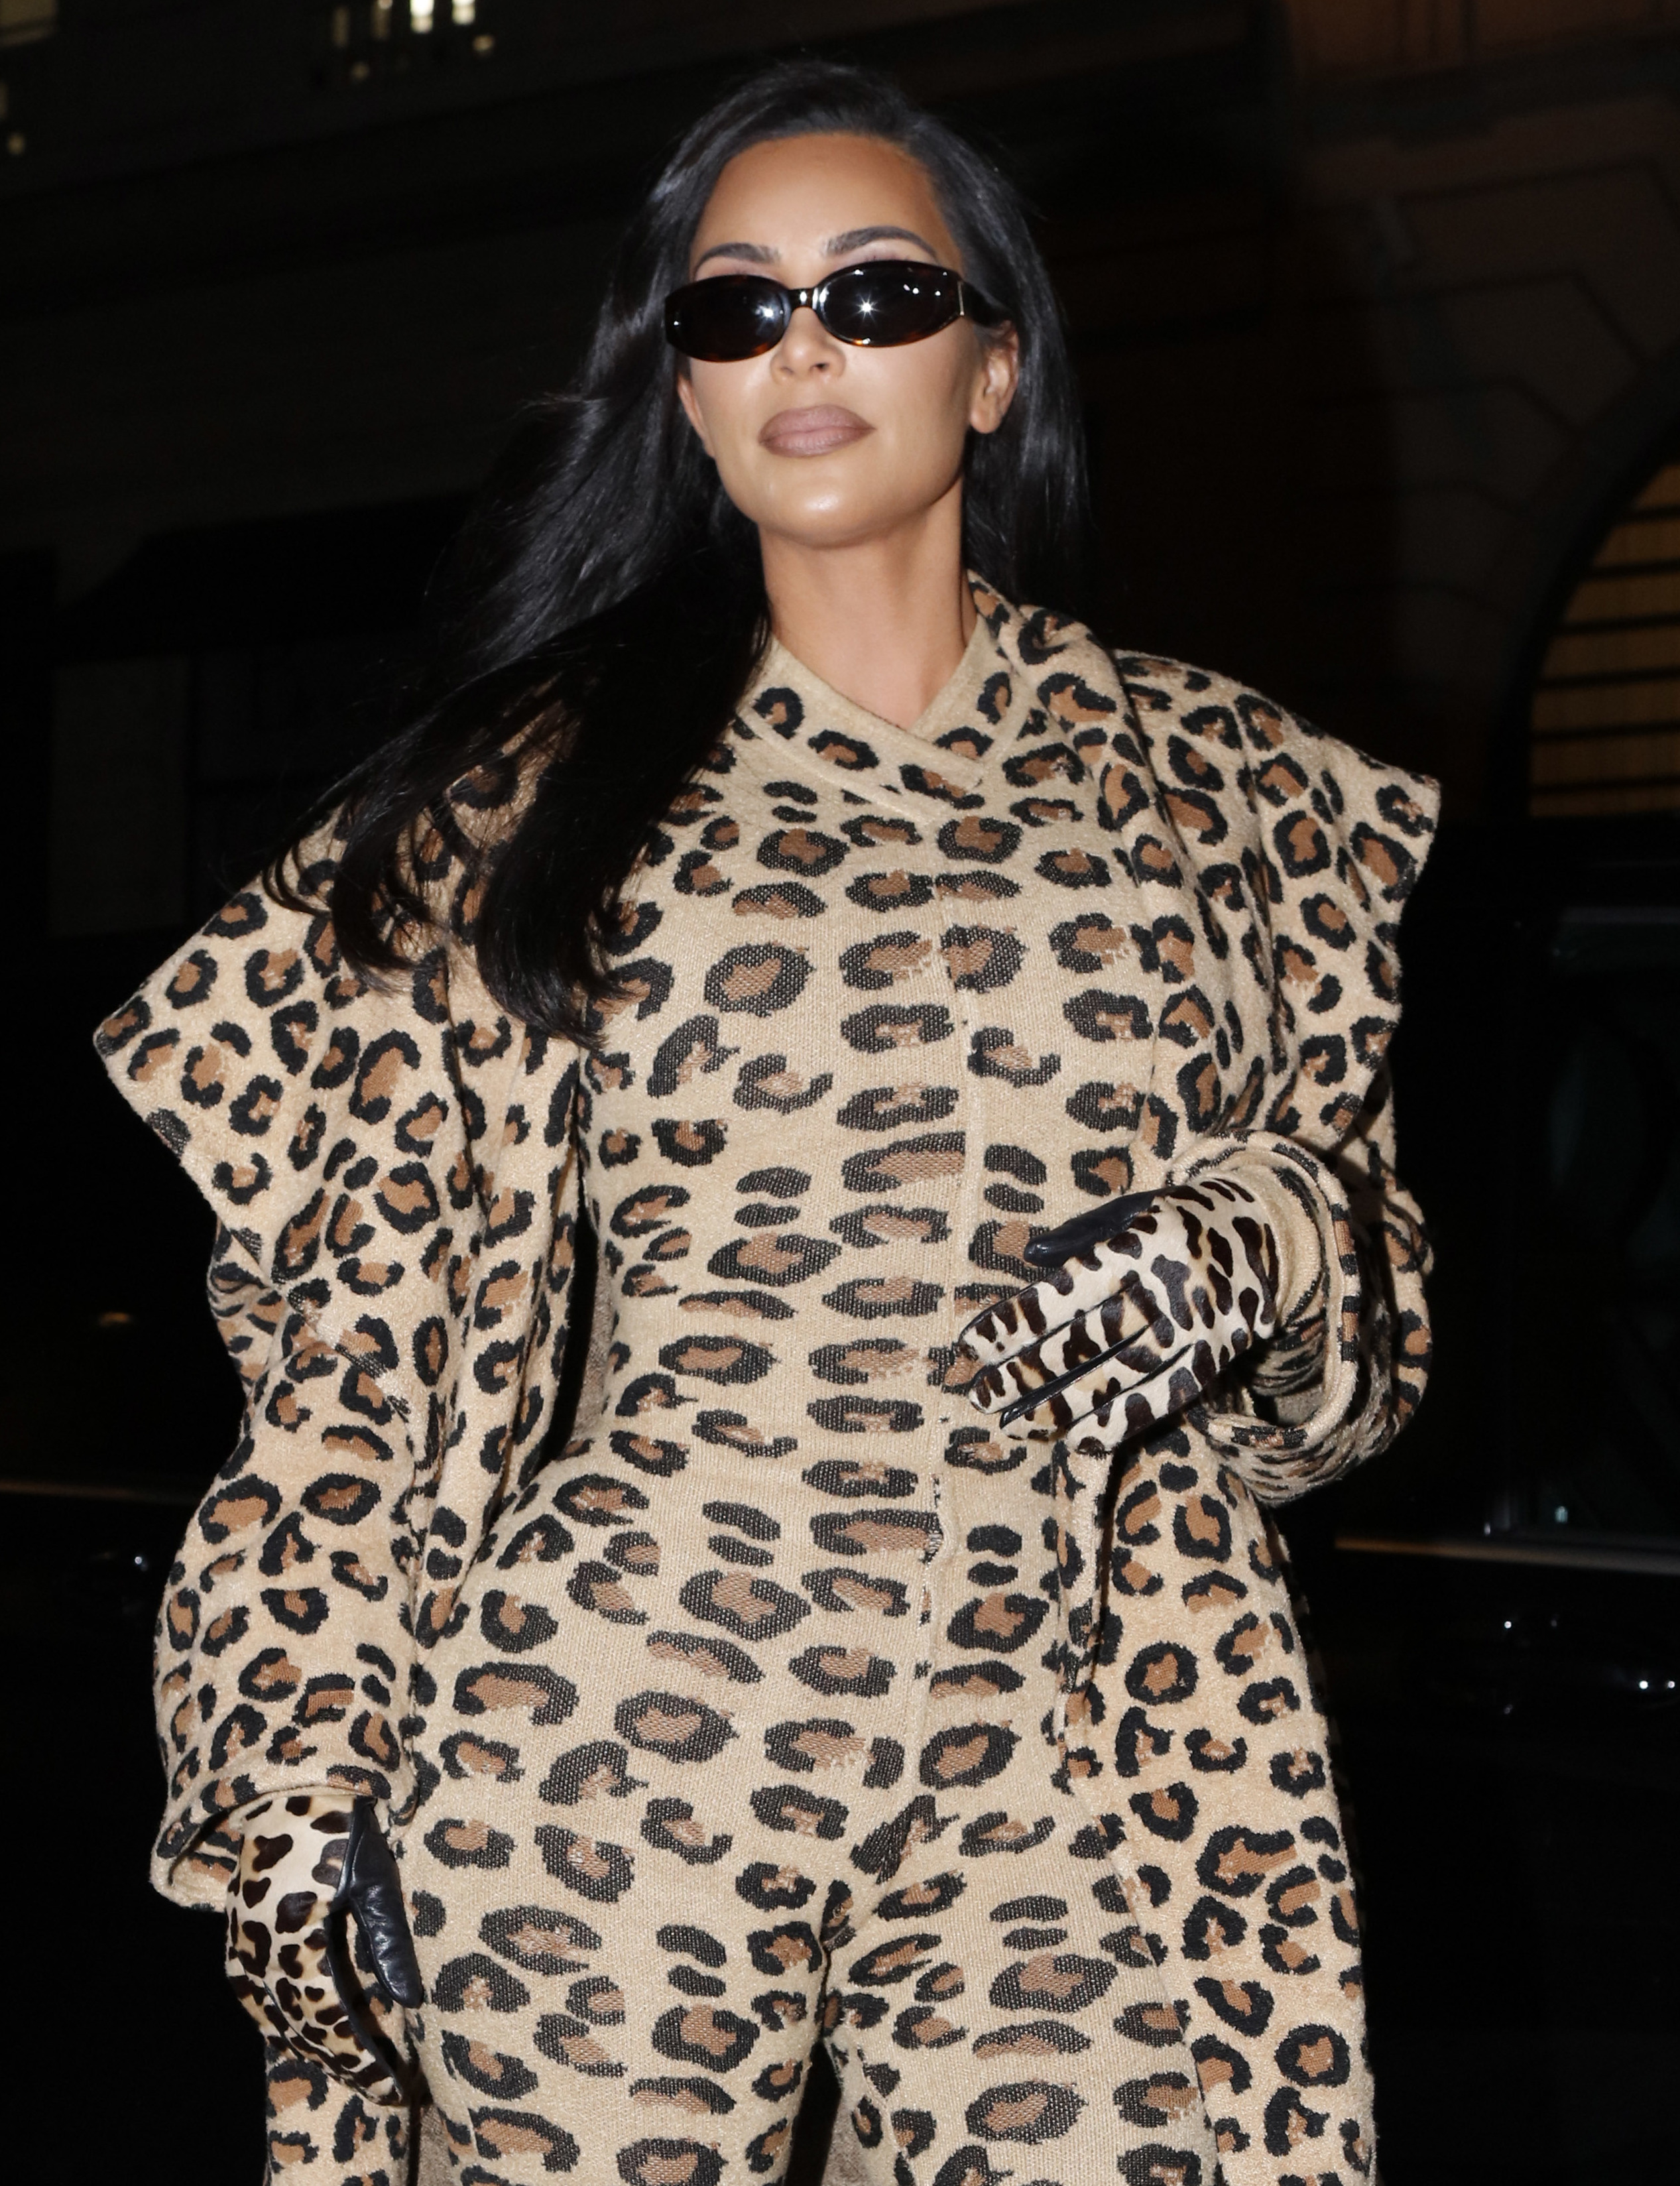 Kim Kardashian West out and about in Paris